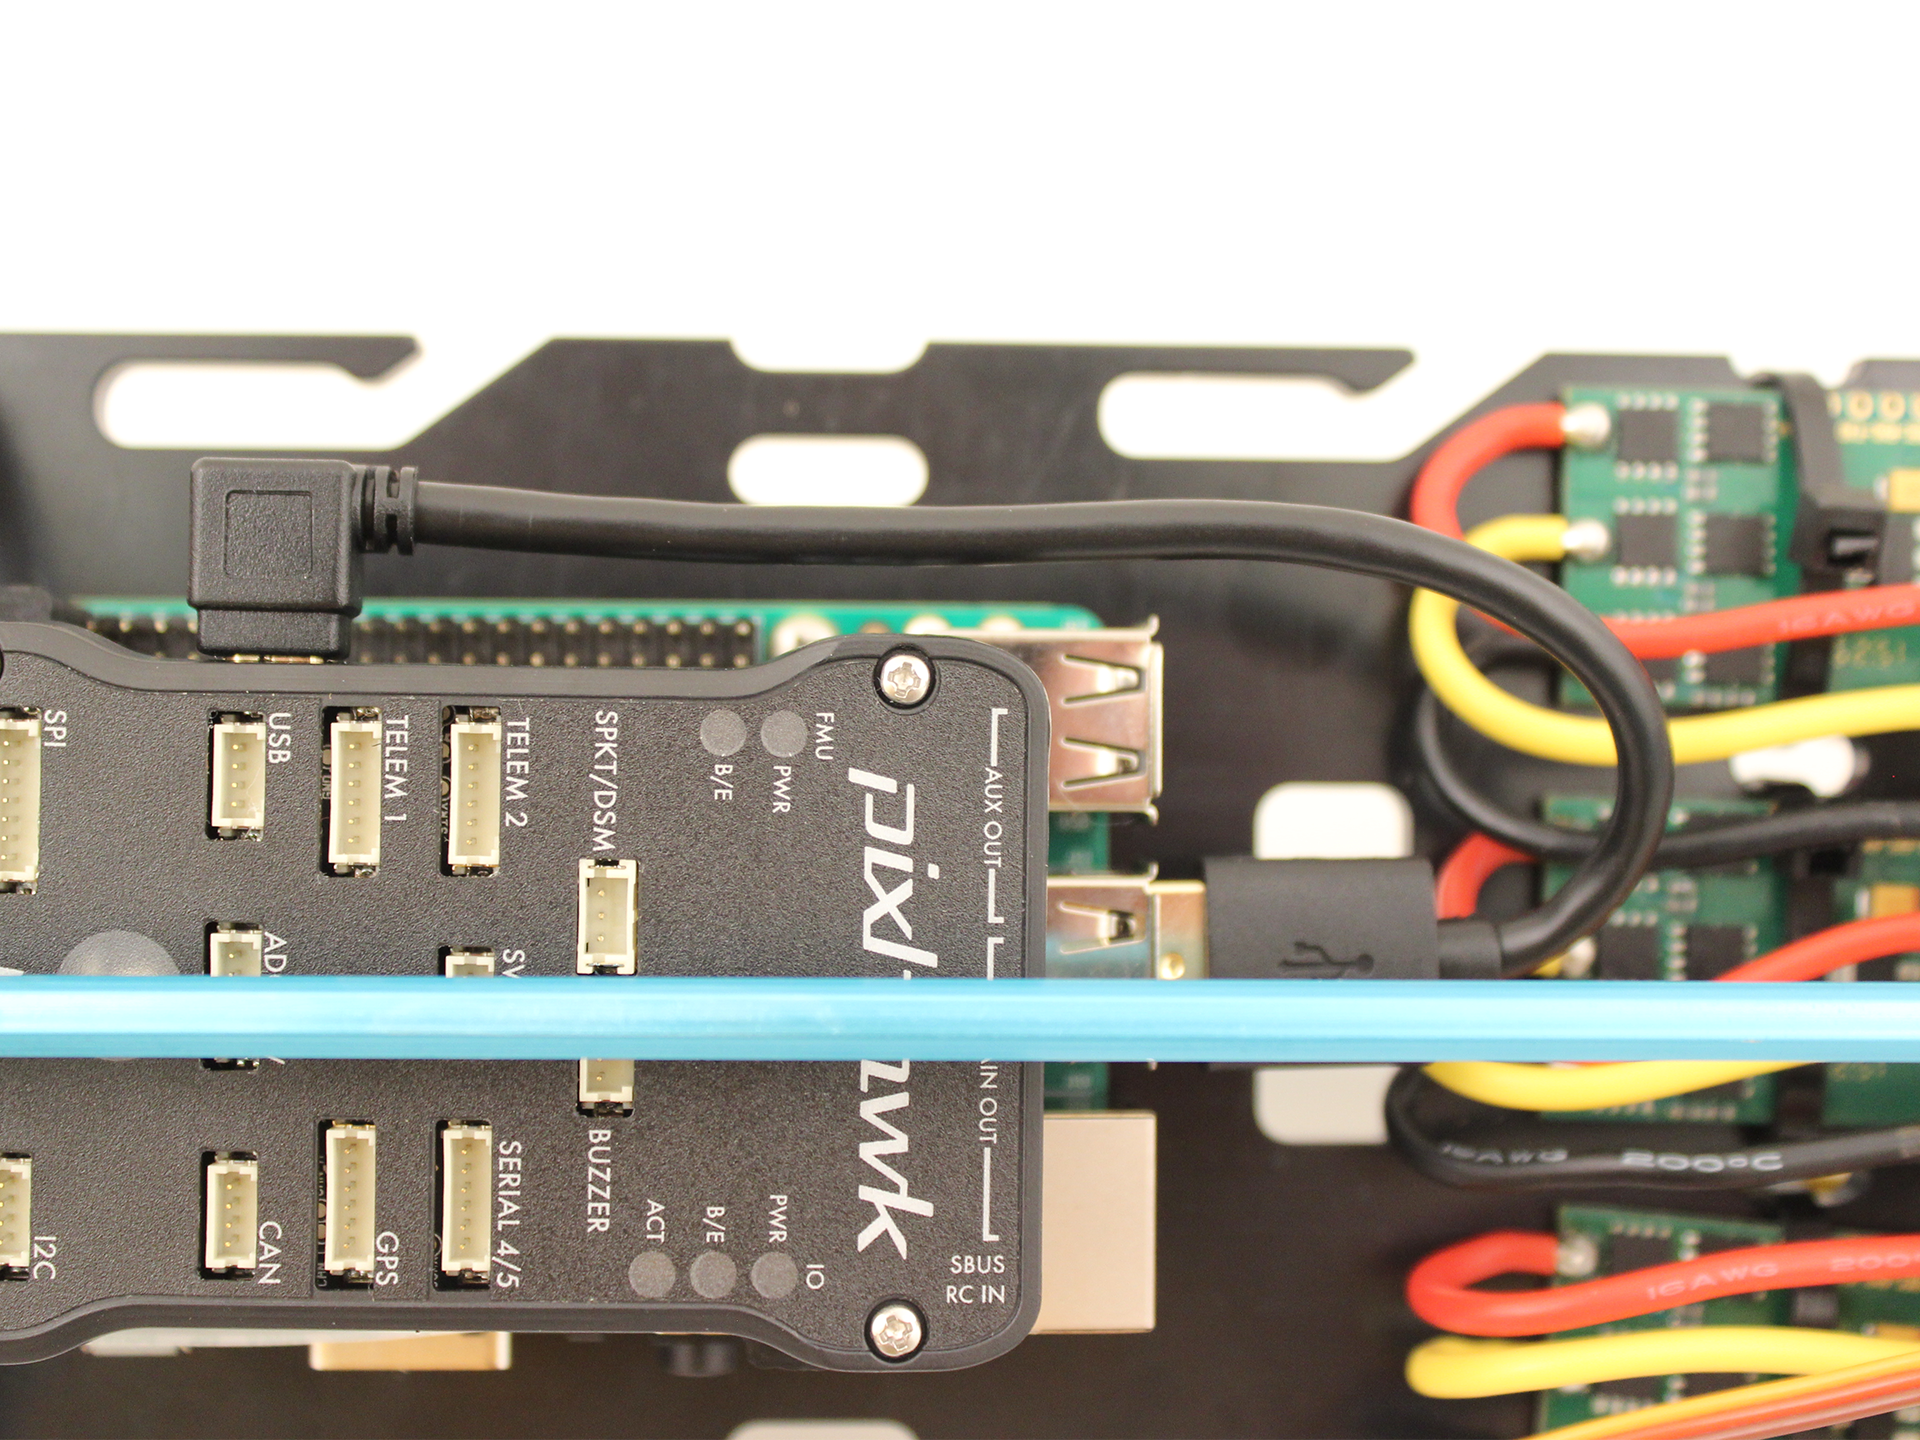 Bluerov2 Kit Assembly Pre March 2017 Wiring Usb Connector Connect The Cable To Pixhawk And Raspberry Pi As Shown